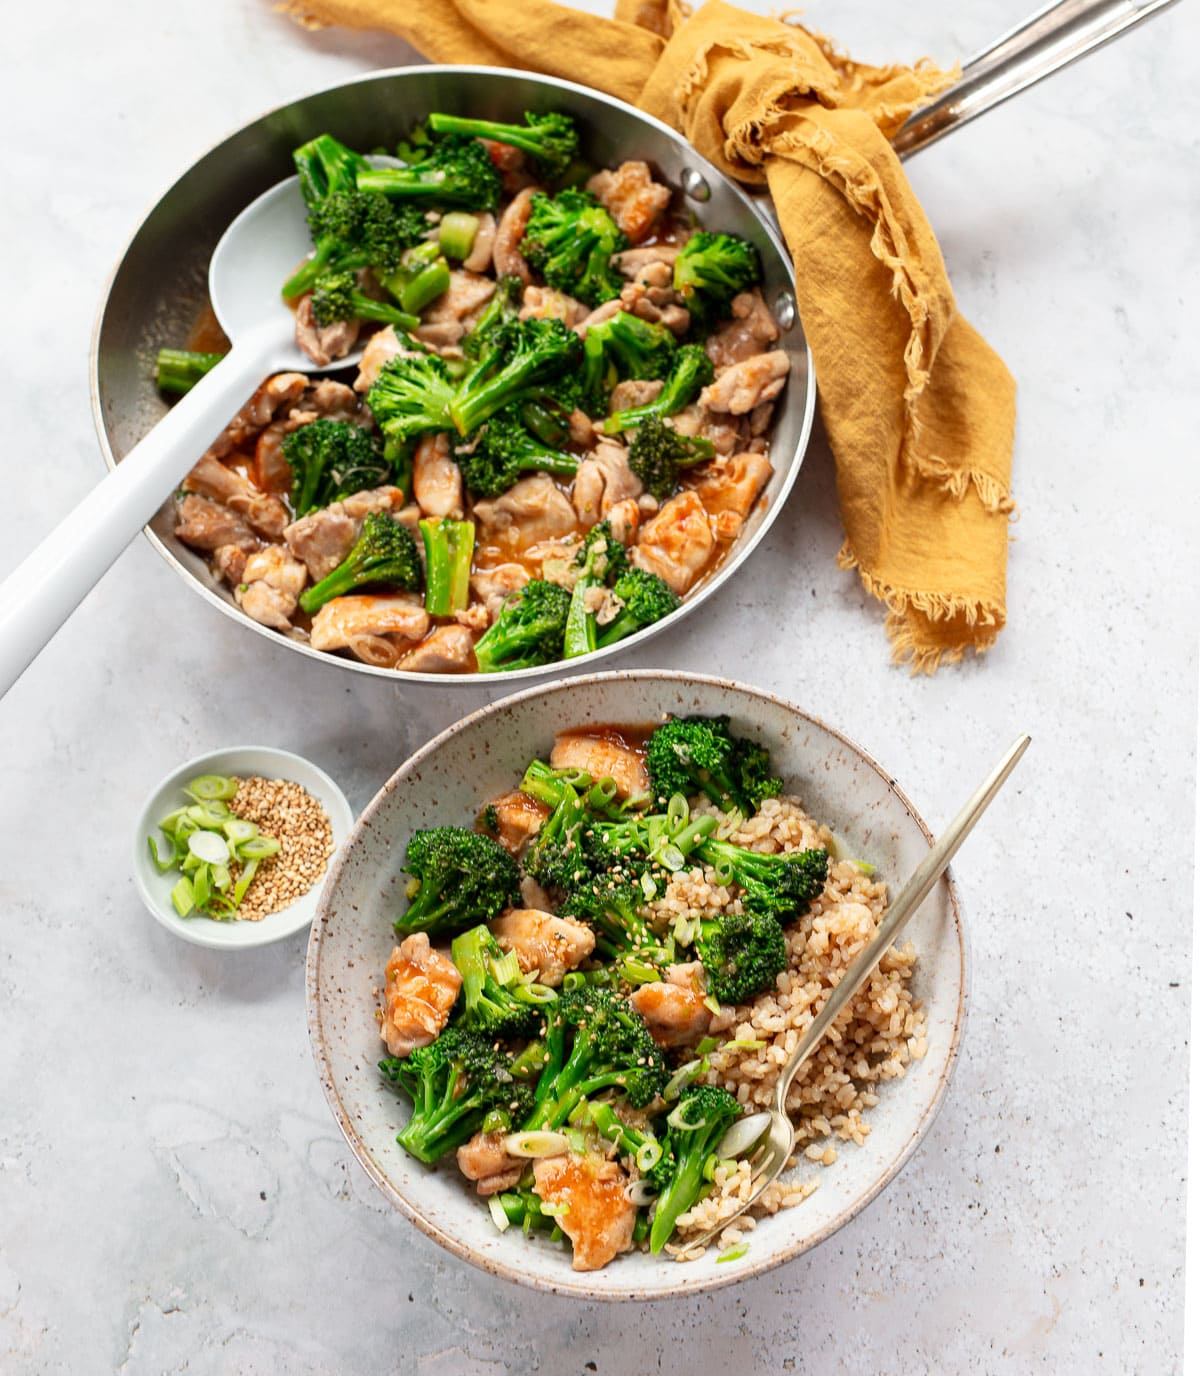 Chicken and broccoli stir-fry in a skillet with a serving spoon and a bowl serving with rice.